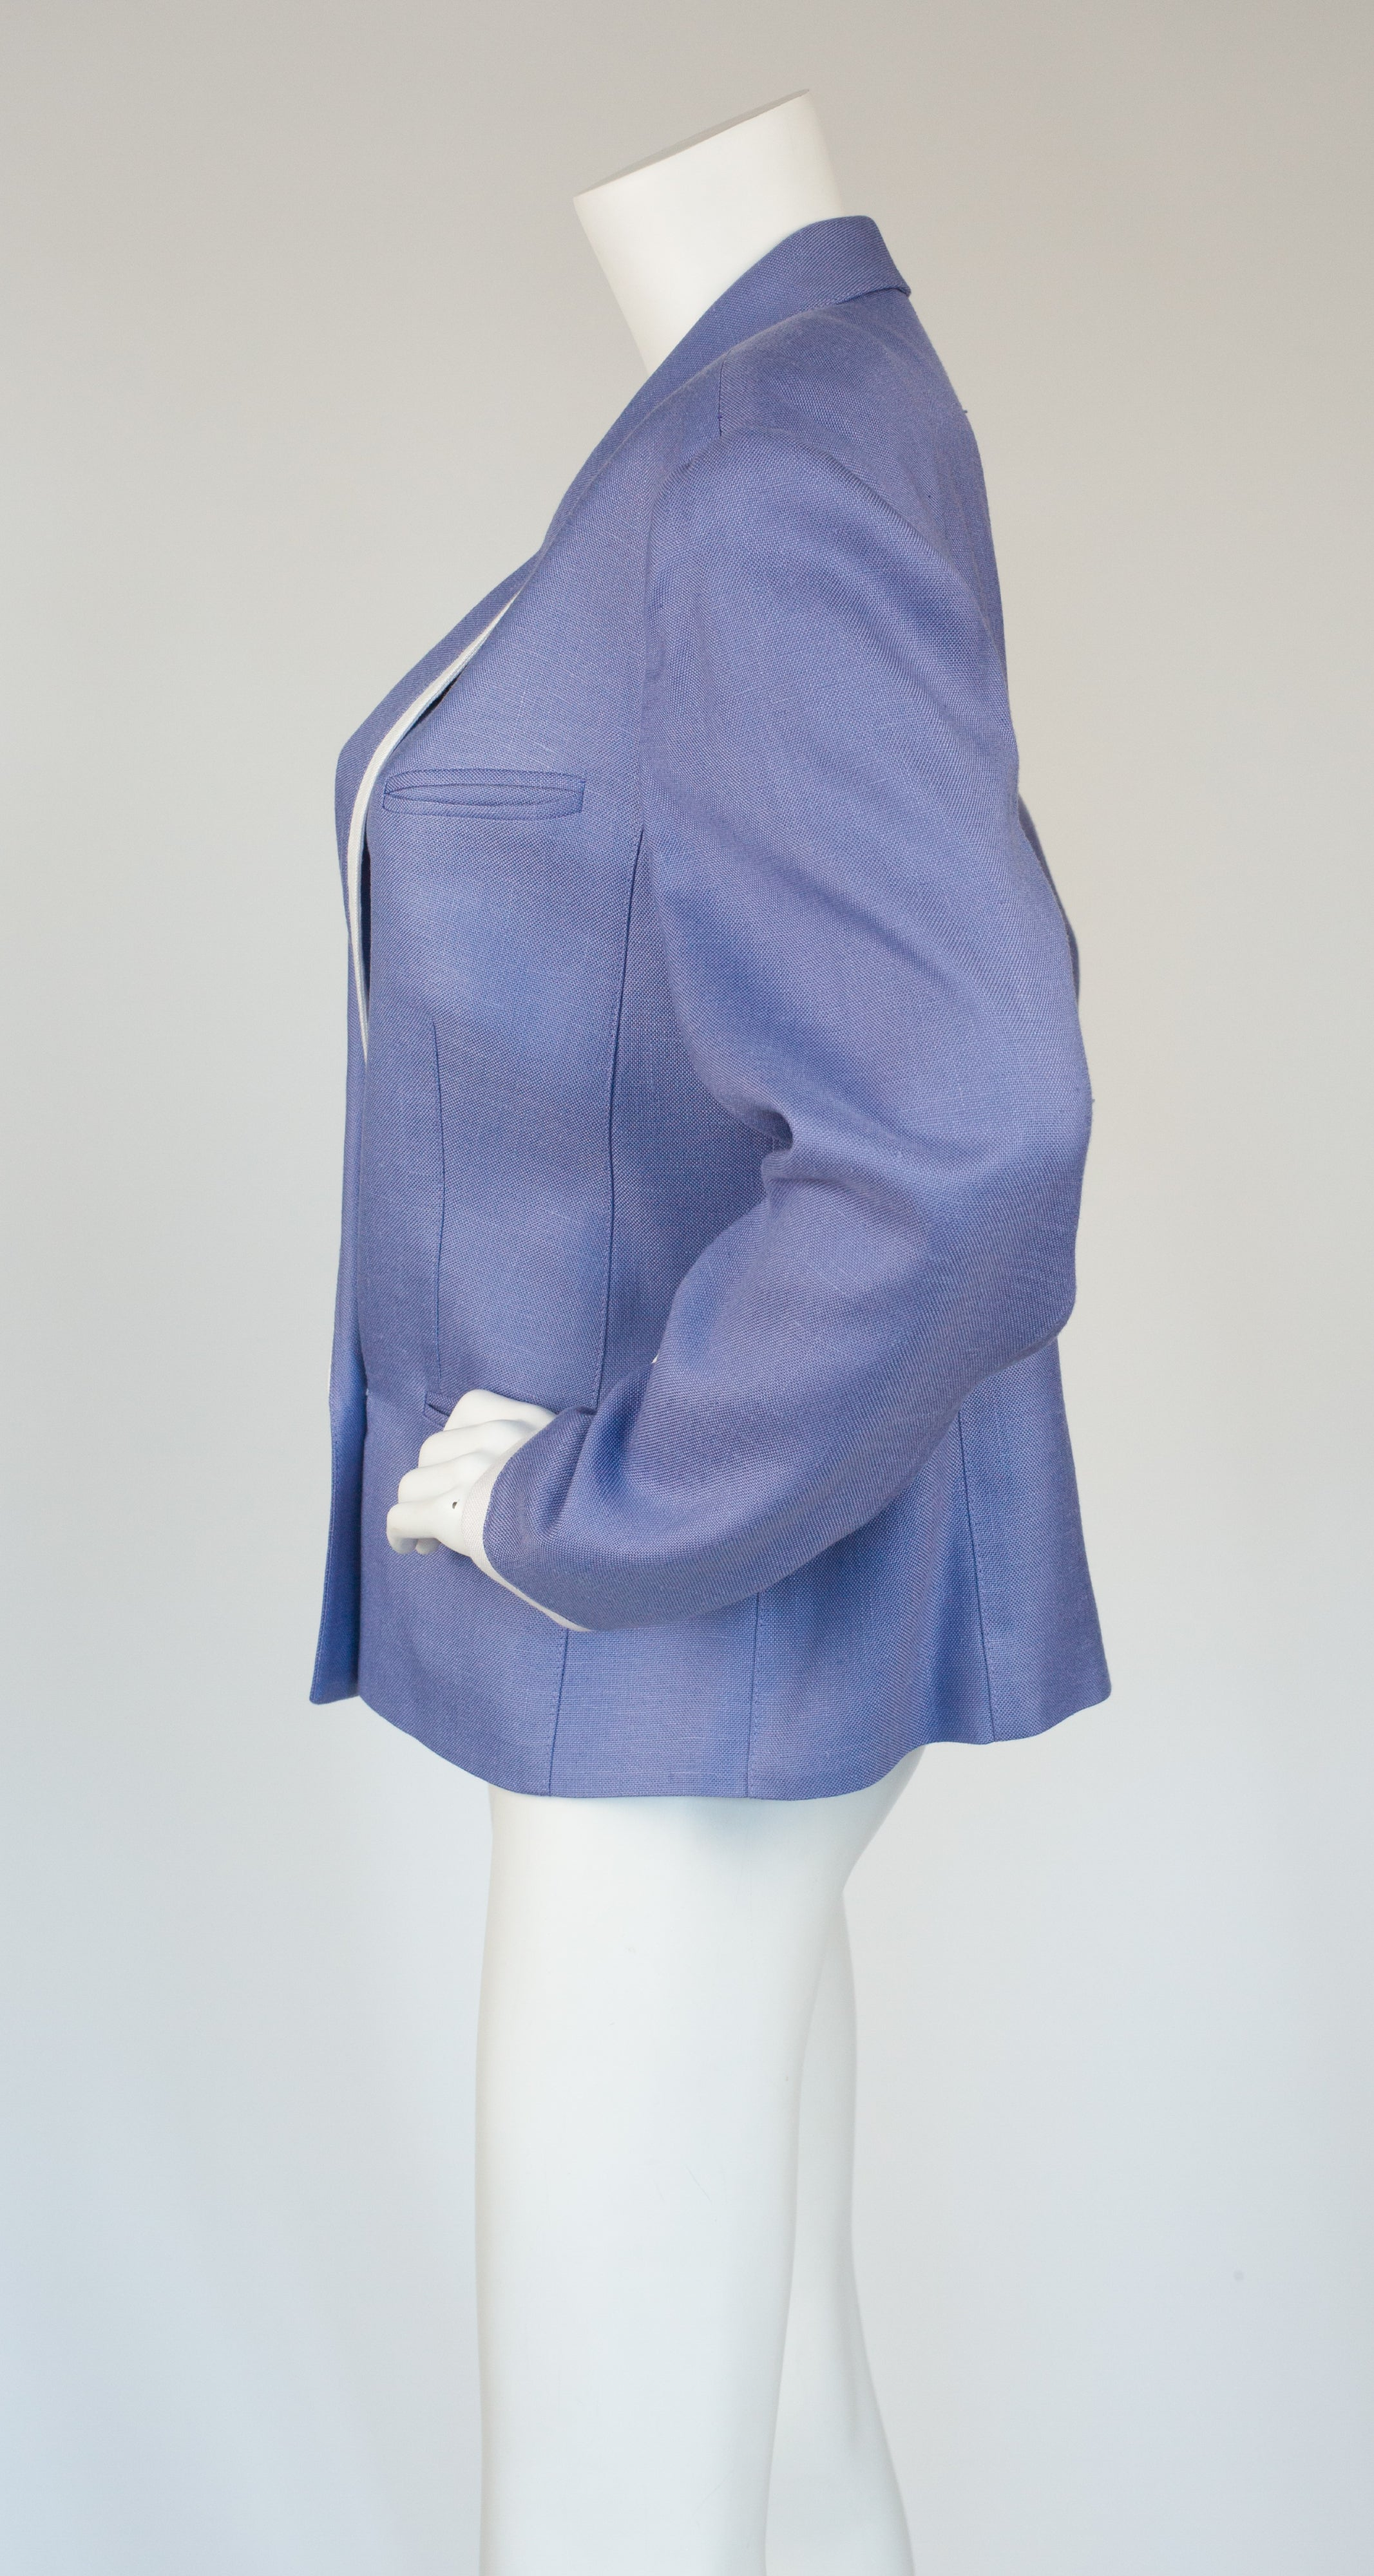 1980s Lavender Collared Blazer Jacket